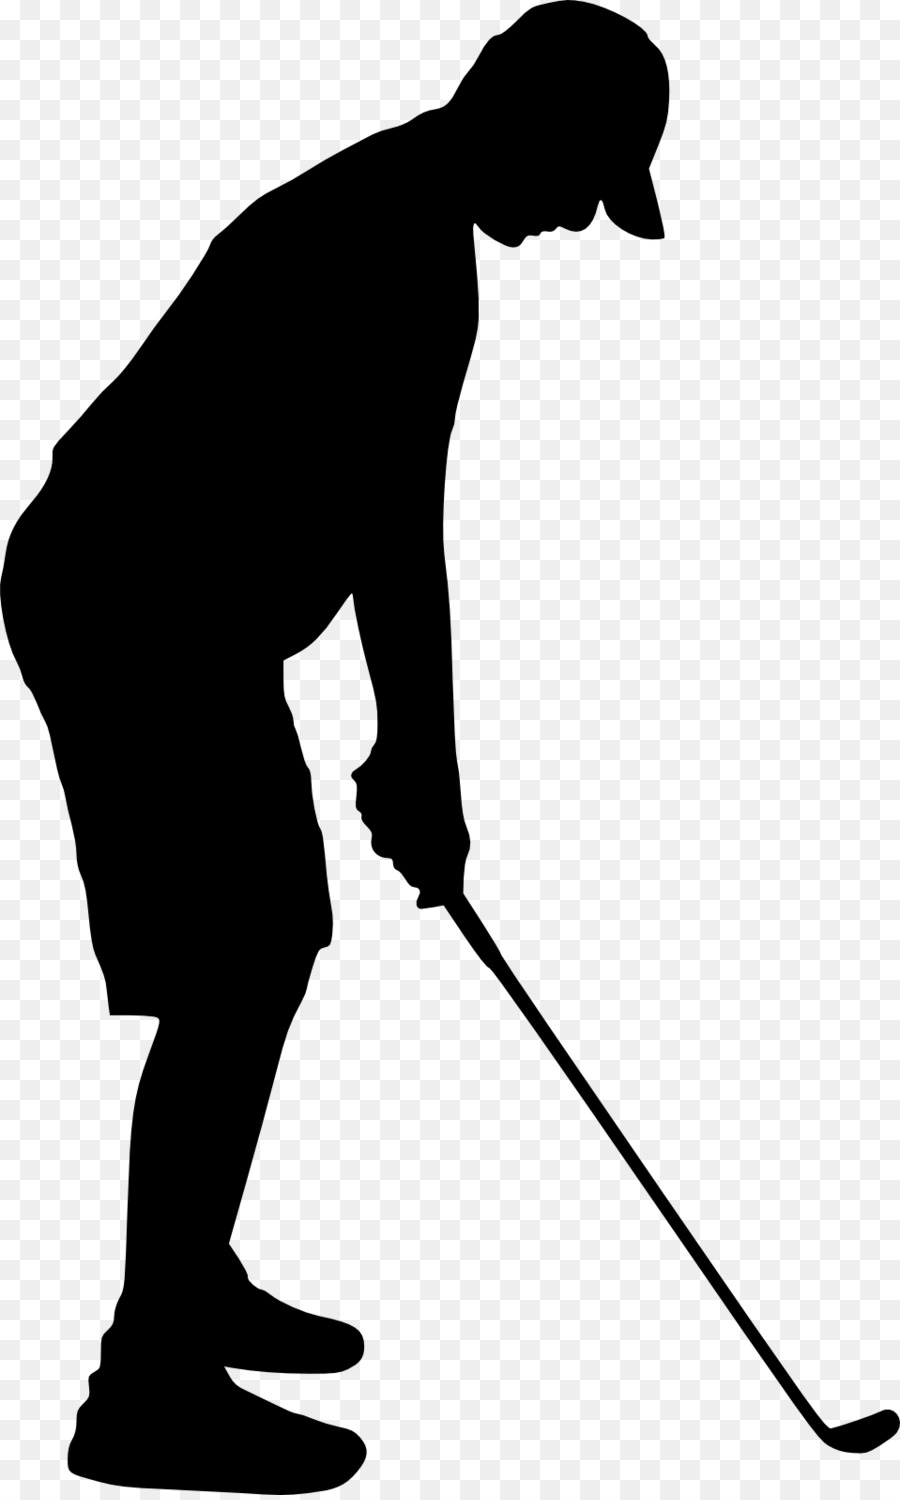 golfer clipart golf equipment